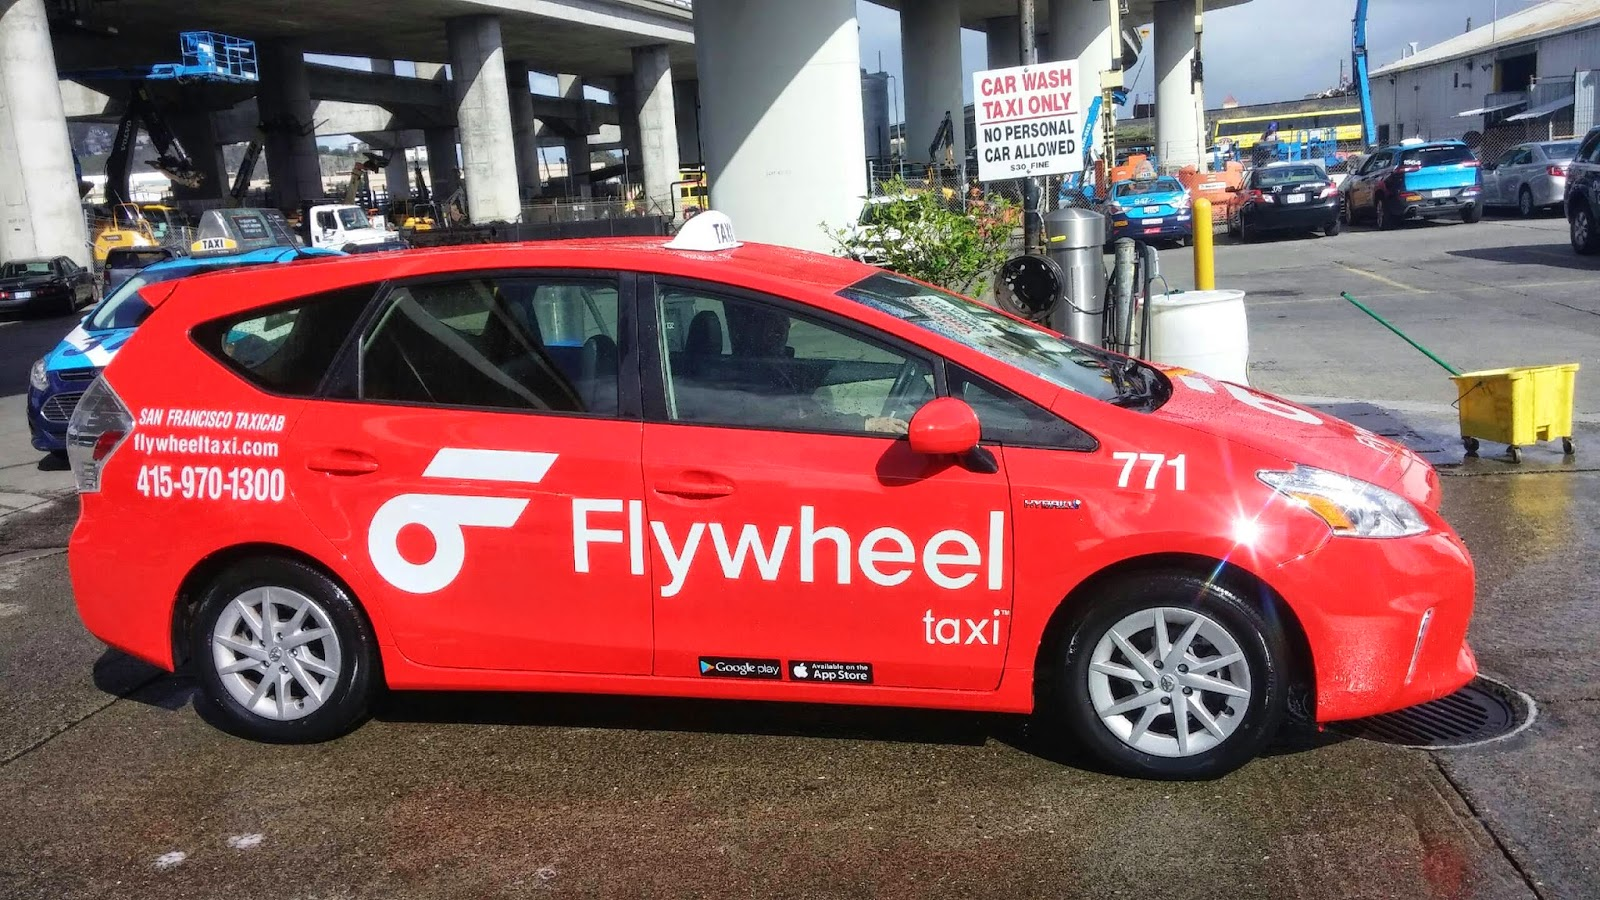 The Phantom Cab Driver Phites Back: Thoughts on Flywheel/Desoto